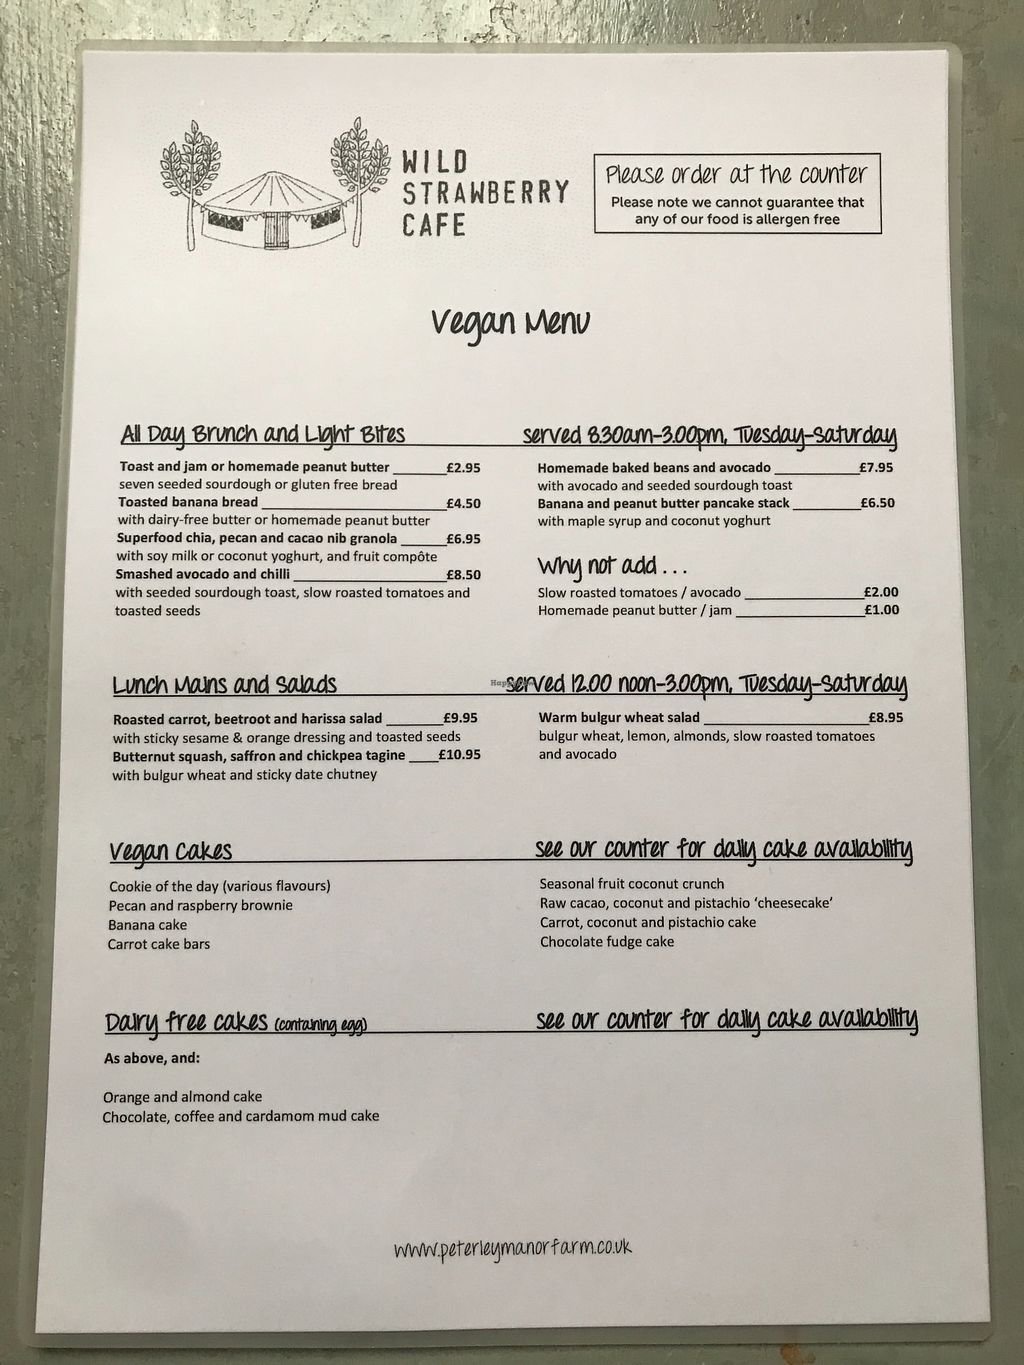 """Photo of Wild Strawberry Cafe  by <a href=""""/members/profile/Shelleyb123"""">Shelleyb123</a> <br/>Vegan menu! Breakfast, brunch, lunch and sweet options!  <br/> April 3, 2018  - <a href='/contact/abuse/image/115559/380090'>Report</a>"""